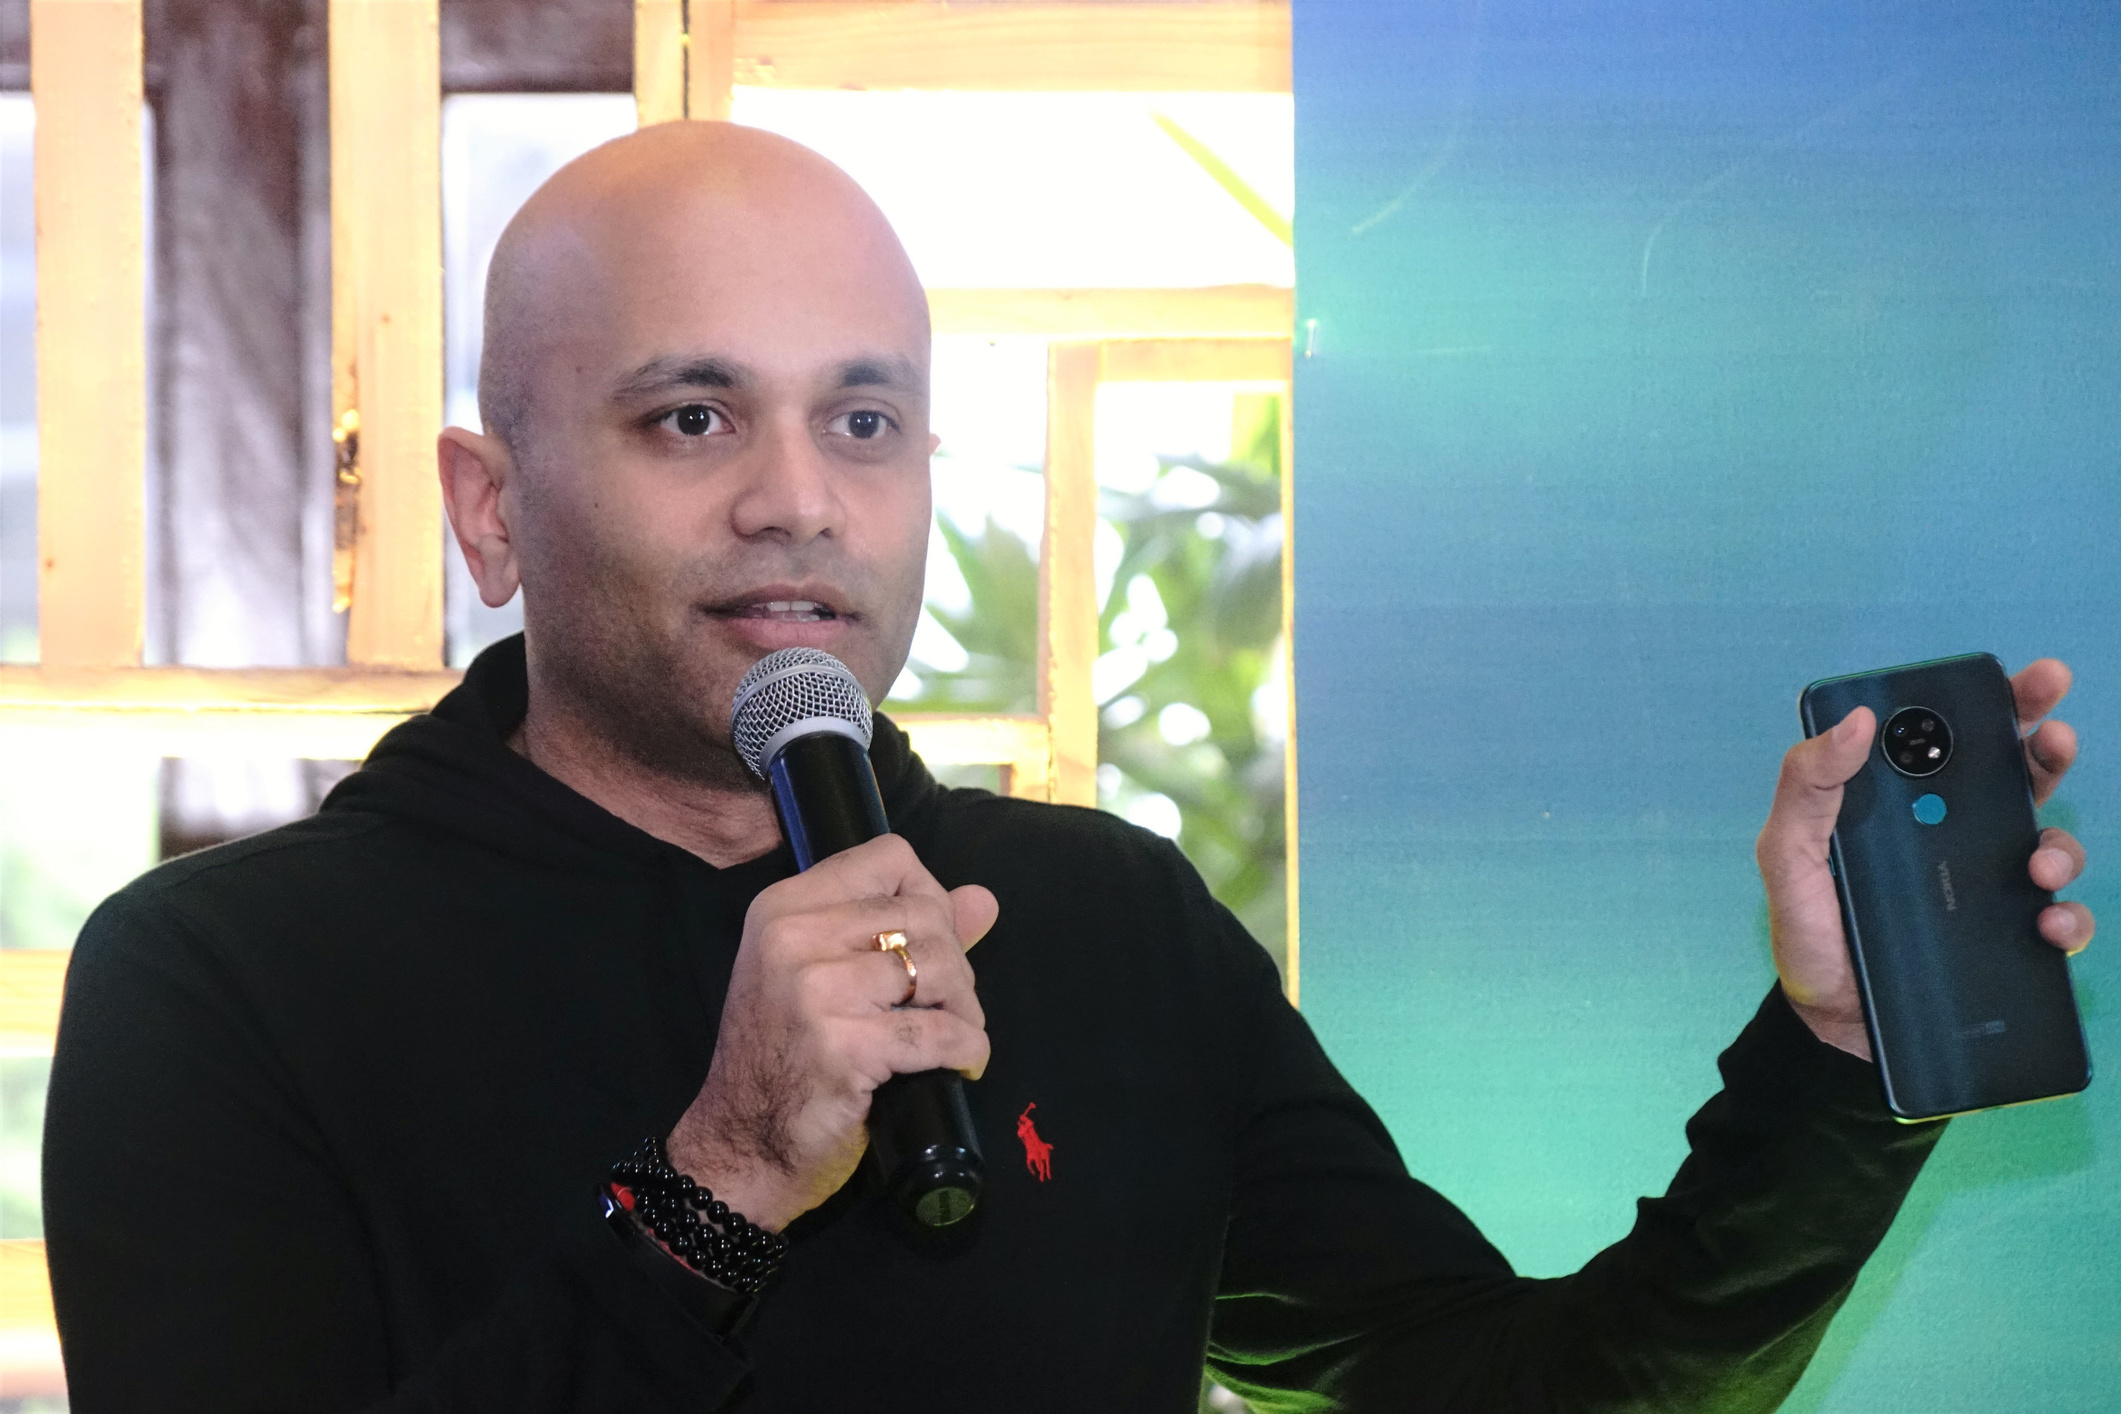 Pranav Shroff, General Manager, Global Product, HMD Global